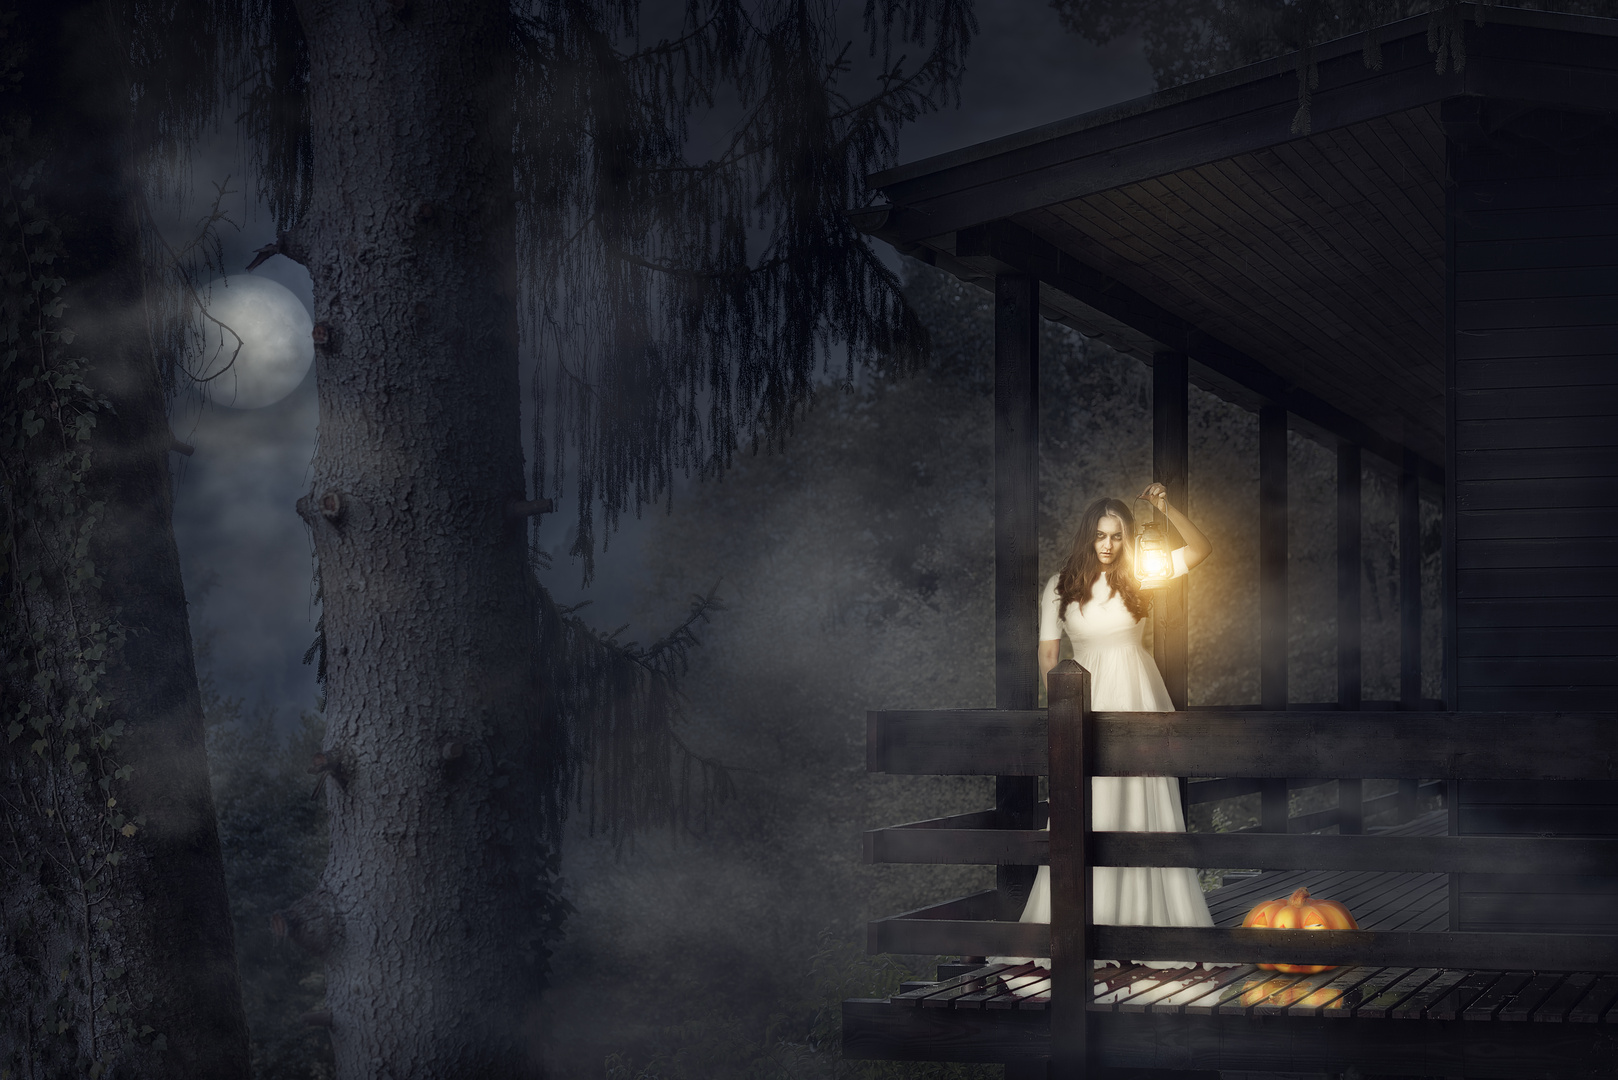 Scary woman in white dress in a dark forest